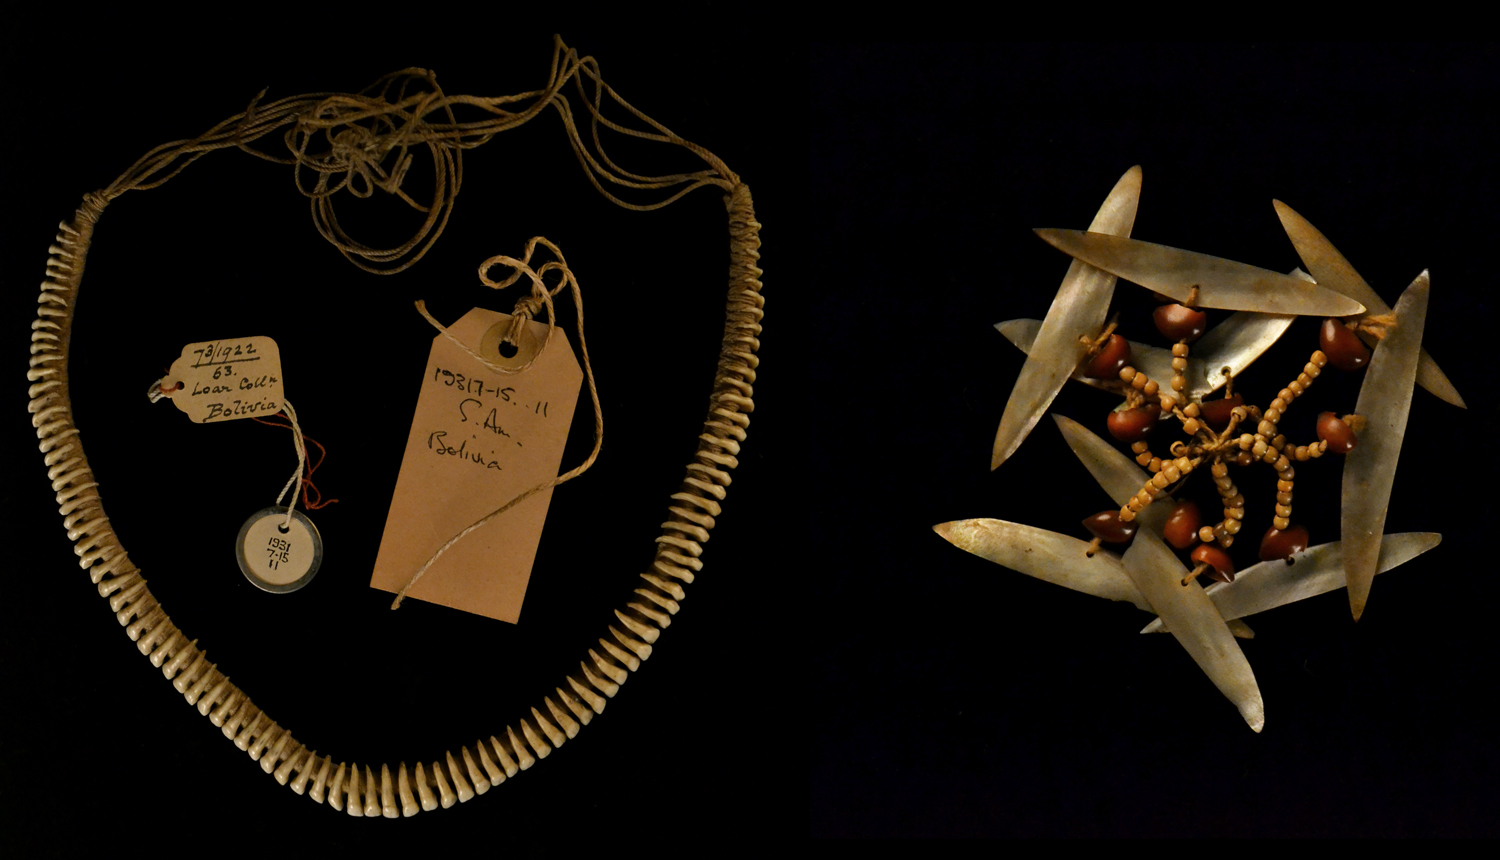 Left: Necklace made of mammal teeth and string. Formerly on loan to the Royal Geographical Society, donated by Nina Fawcett to the British Museum in 1931. Right: Ear ornament made of pearl-shell, beads and seeds. Formerly on loan to the Royal Geographical Society, donated by Nina Fawcett to the British Museum in 1931.